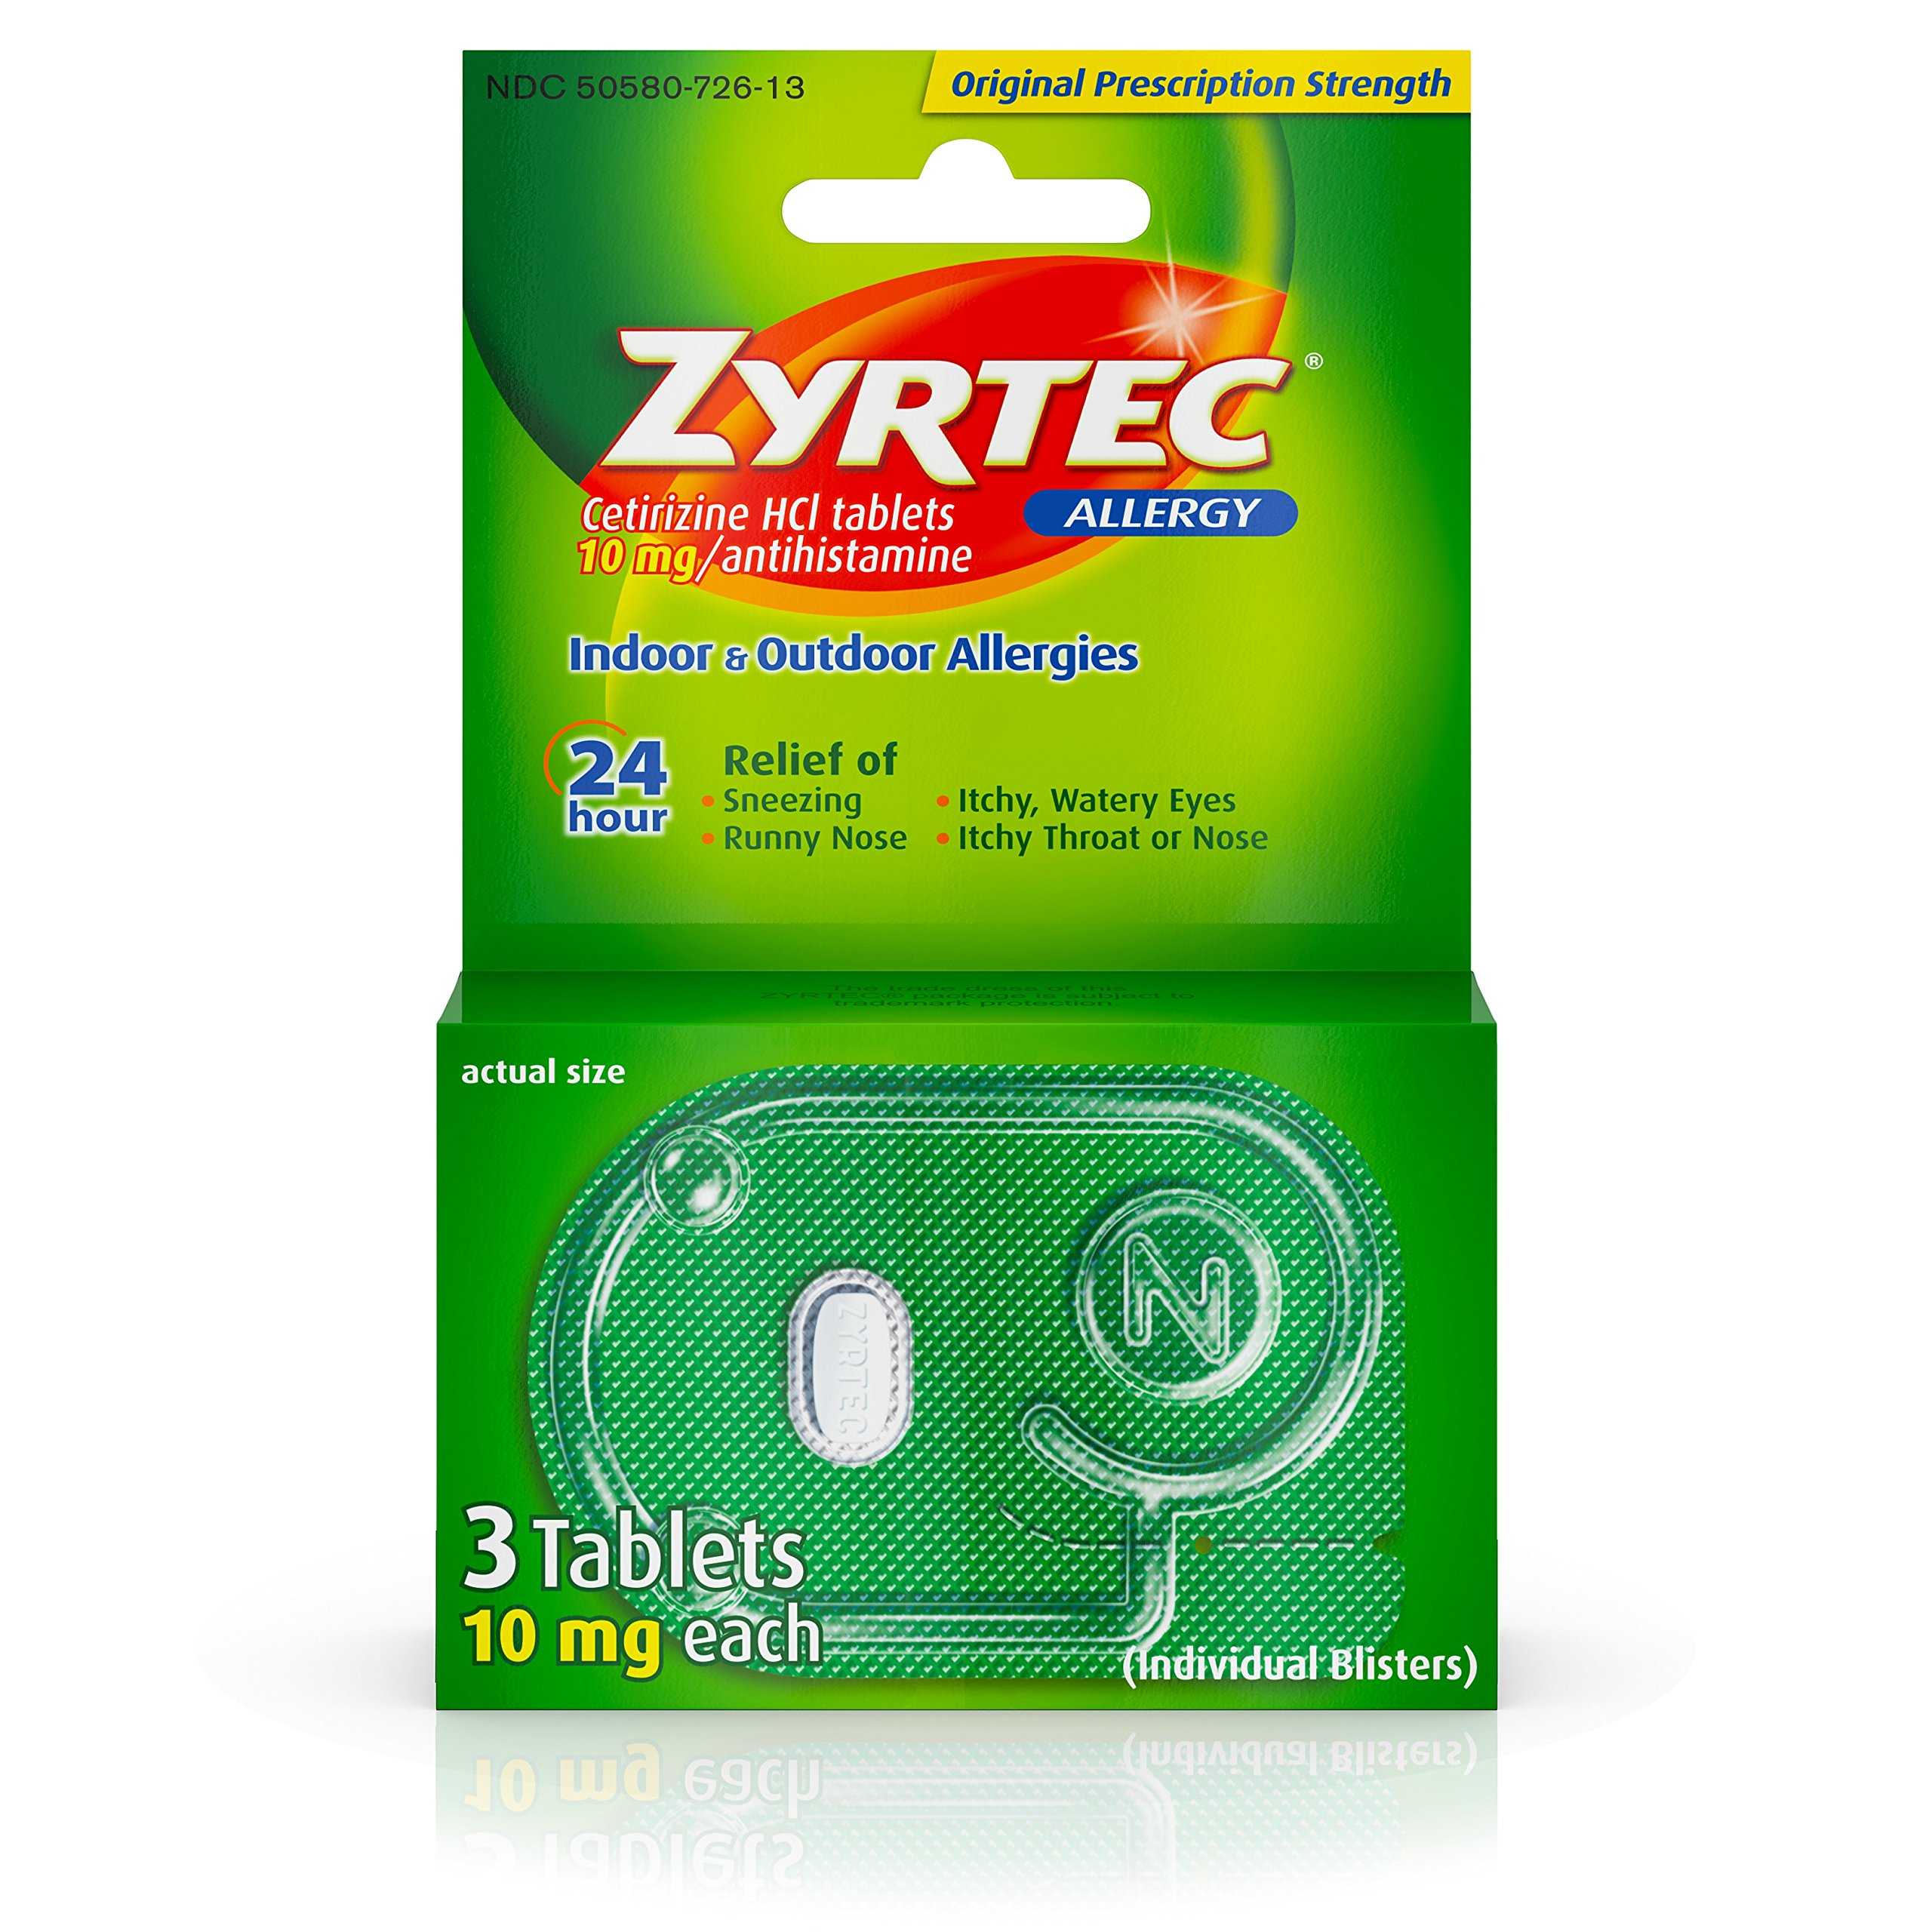 Zyrtec Prescription-Strength Allergy Medicine Tablets With Cetirizine, 3 Count, 10 mg, Travel Size (Pack of 6)